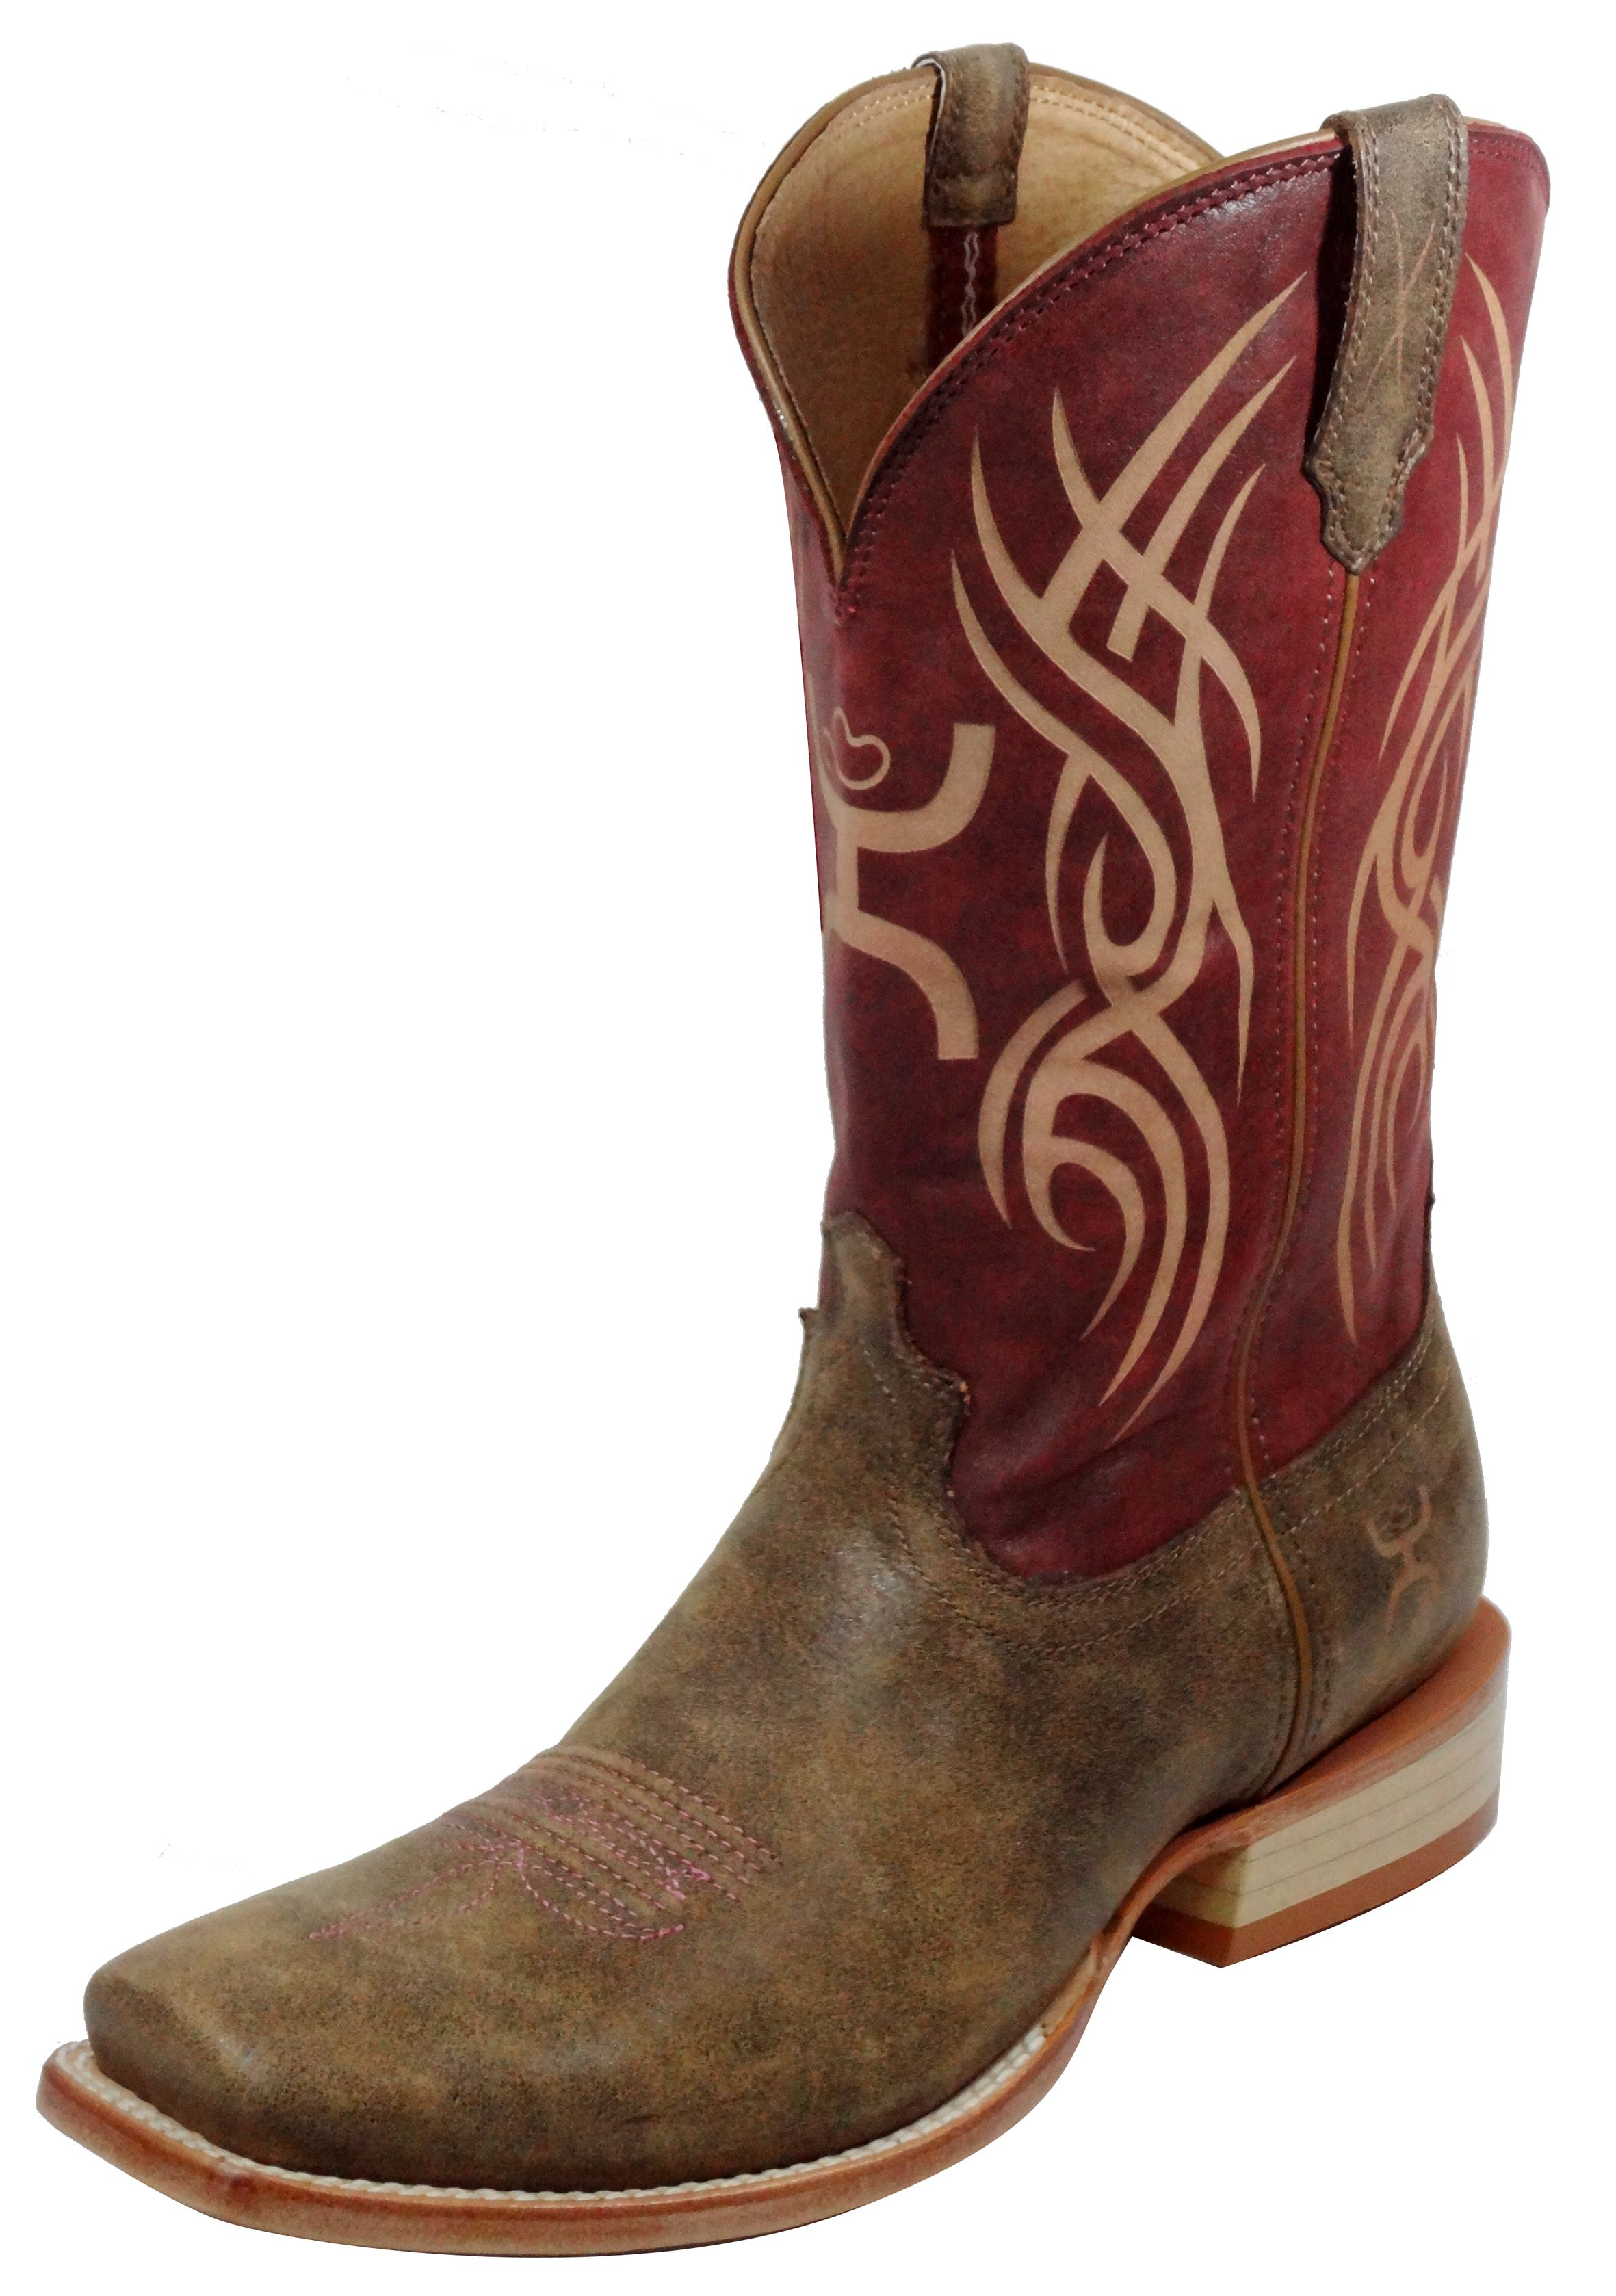 07e9d4c9f53 Twisted X Boots - Hooey Collection Men's - MHY0008 | Hooey ...